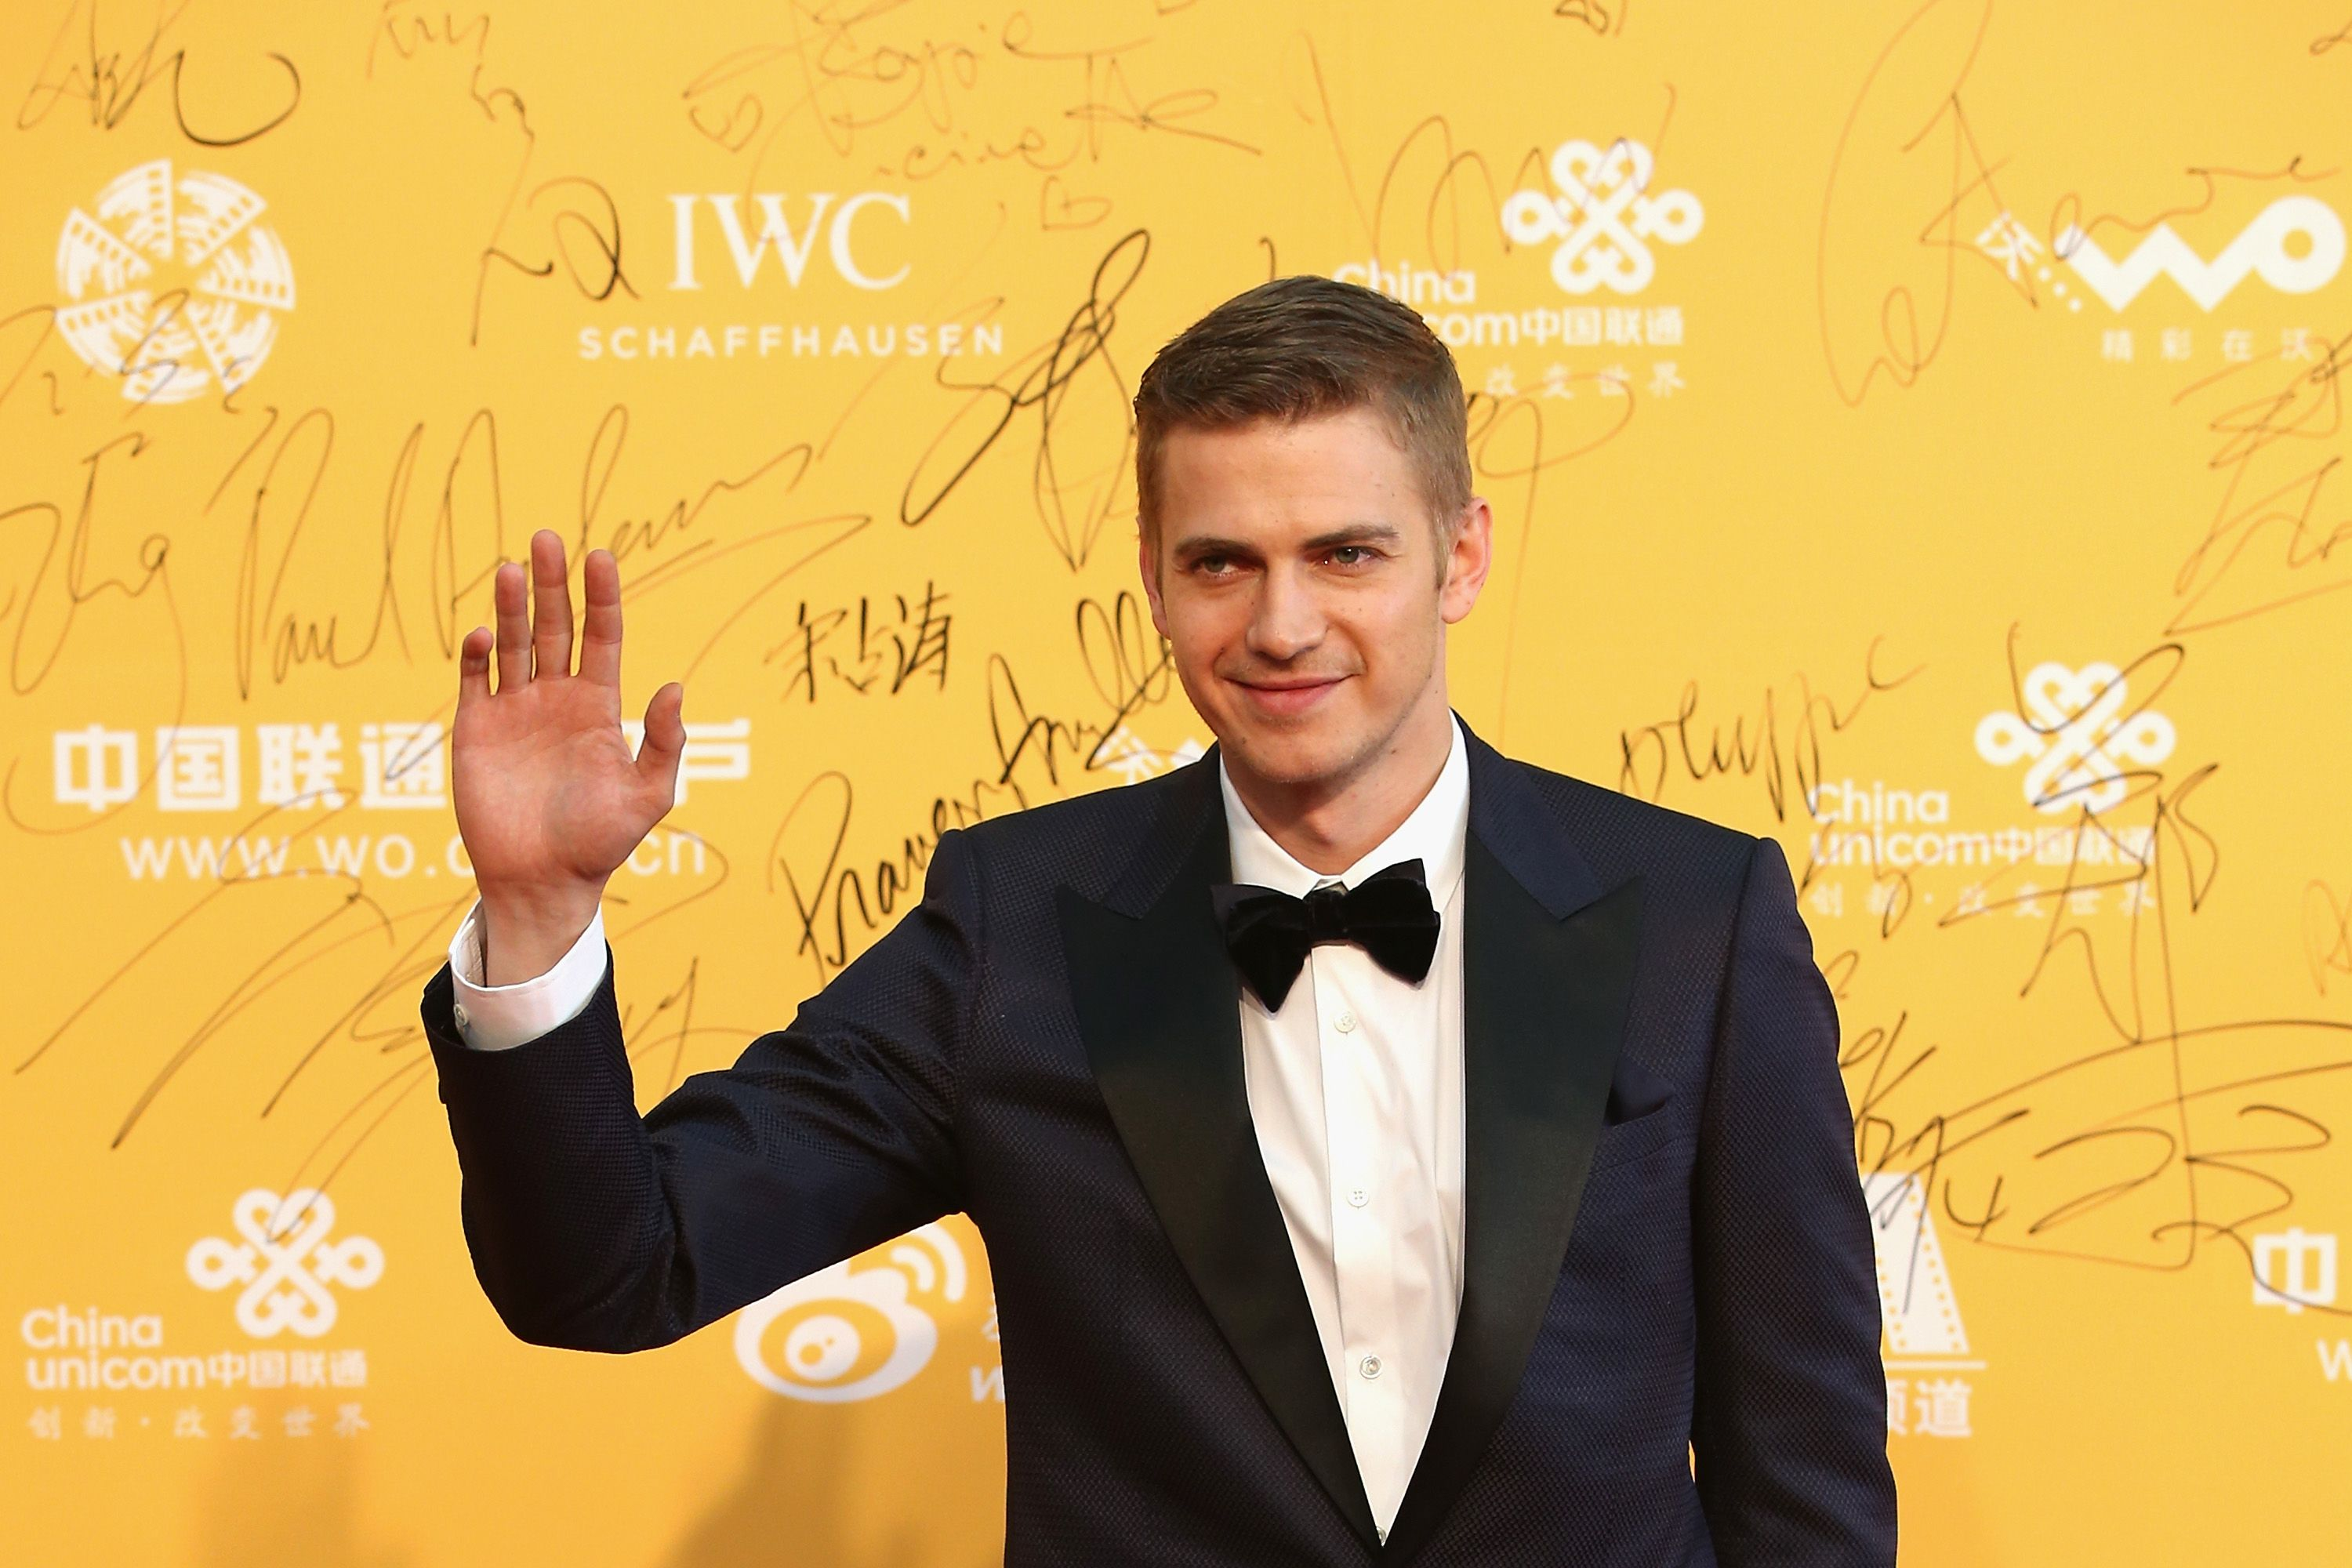 Hayden Christensen at the red carpet of the 4th Beijing International Film Festival in 2014 in Beijing, China | Source: Getty Images